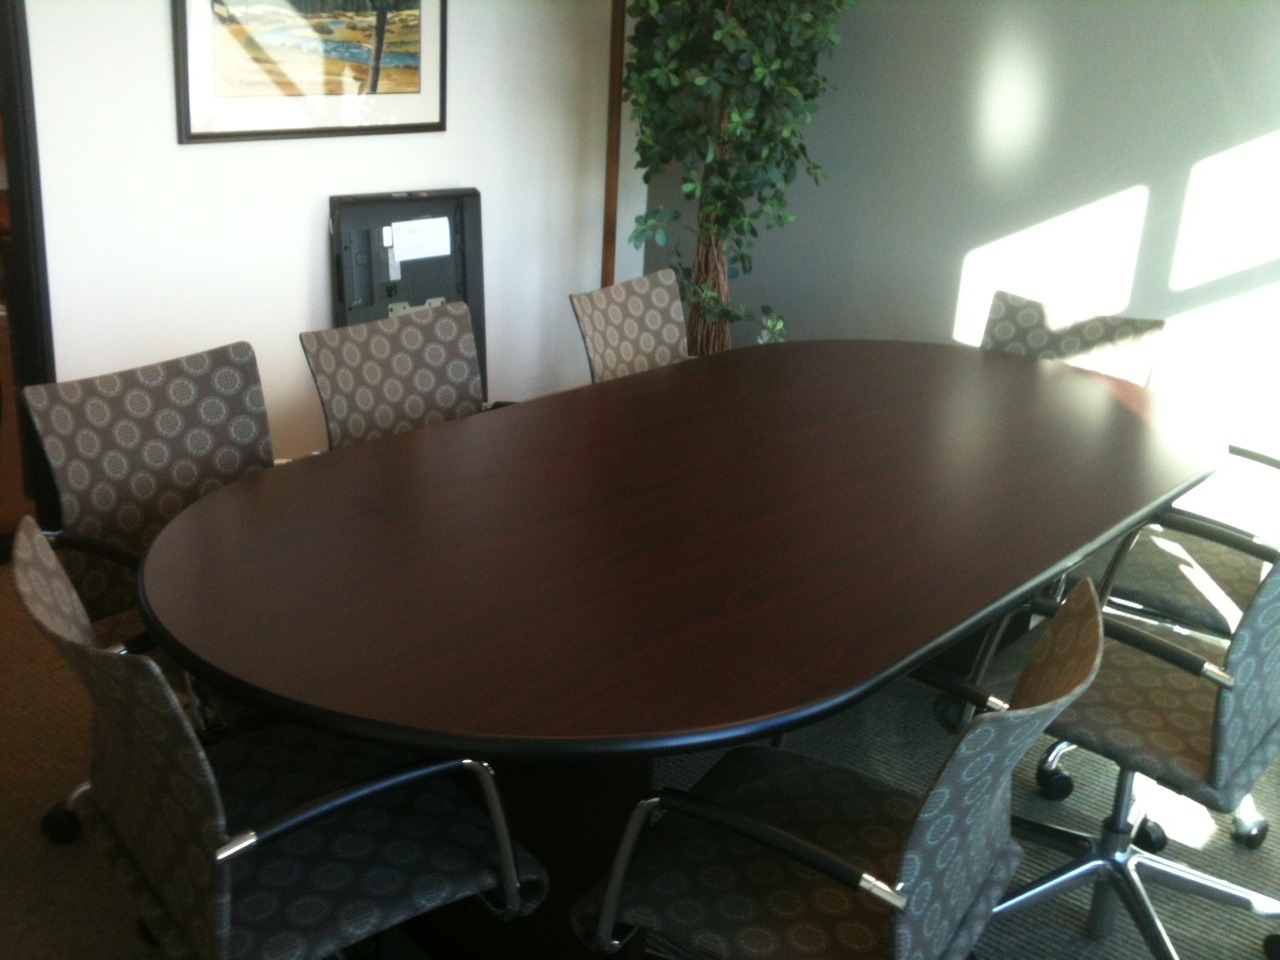 Design In My View Traditional Office Design Goes Modern - Craigslist conference table